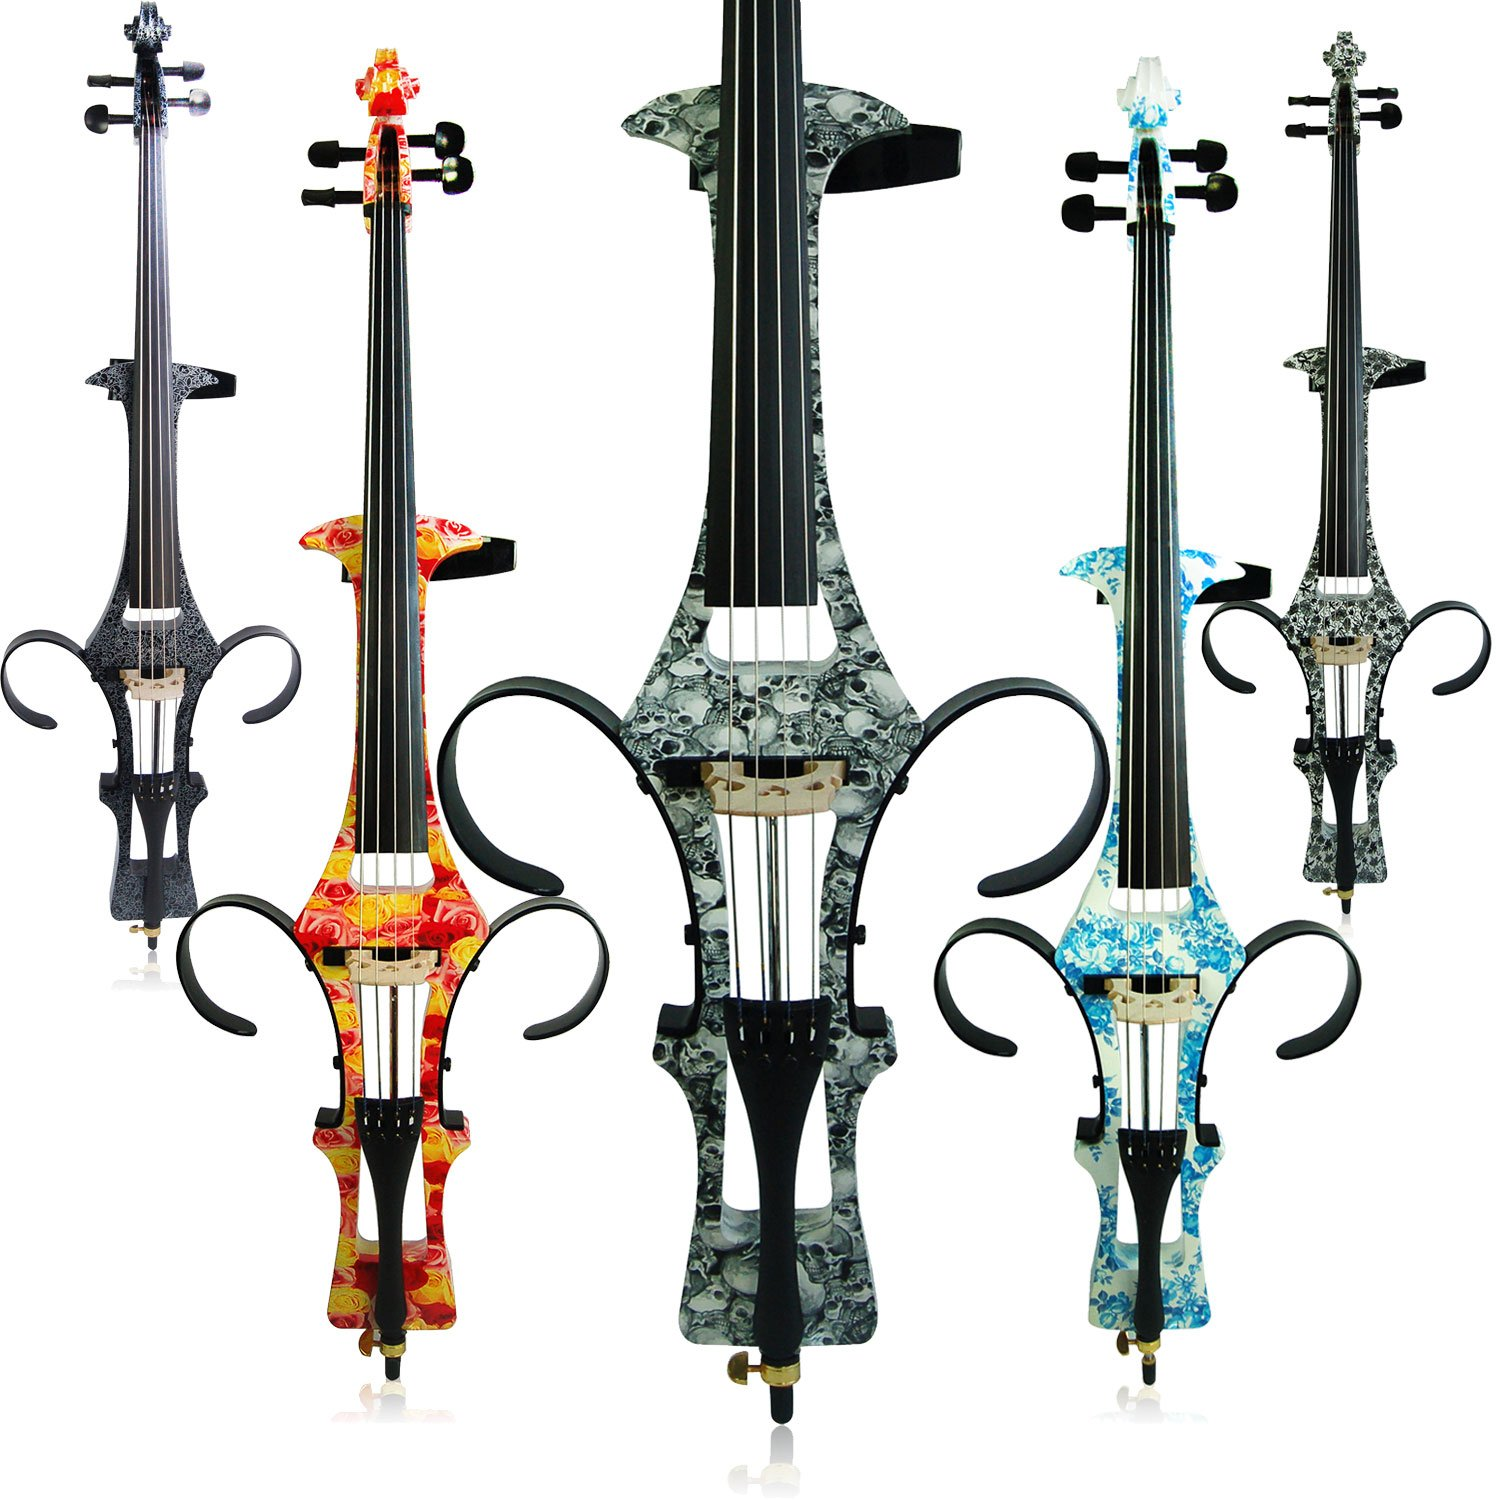 Aliyes Handmade Professional Solid Wood Electric Cello 4/4 Full Size Silent Electric Cello-Skull